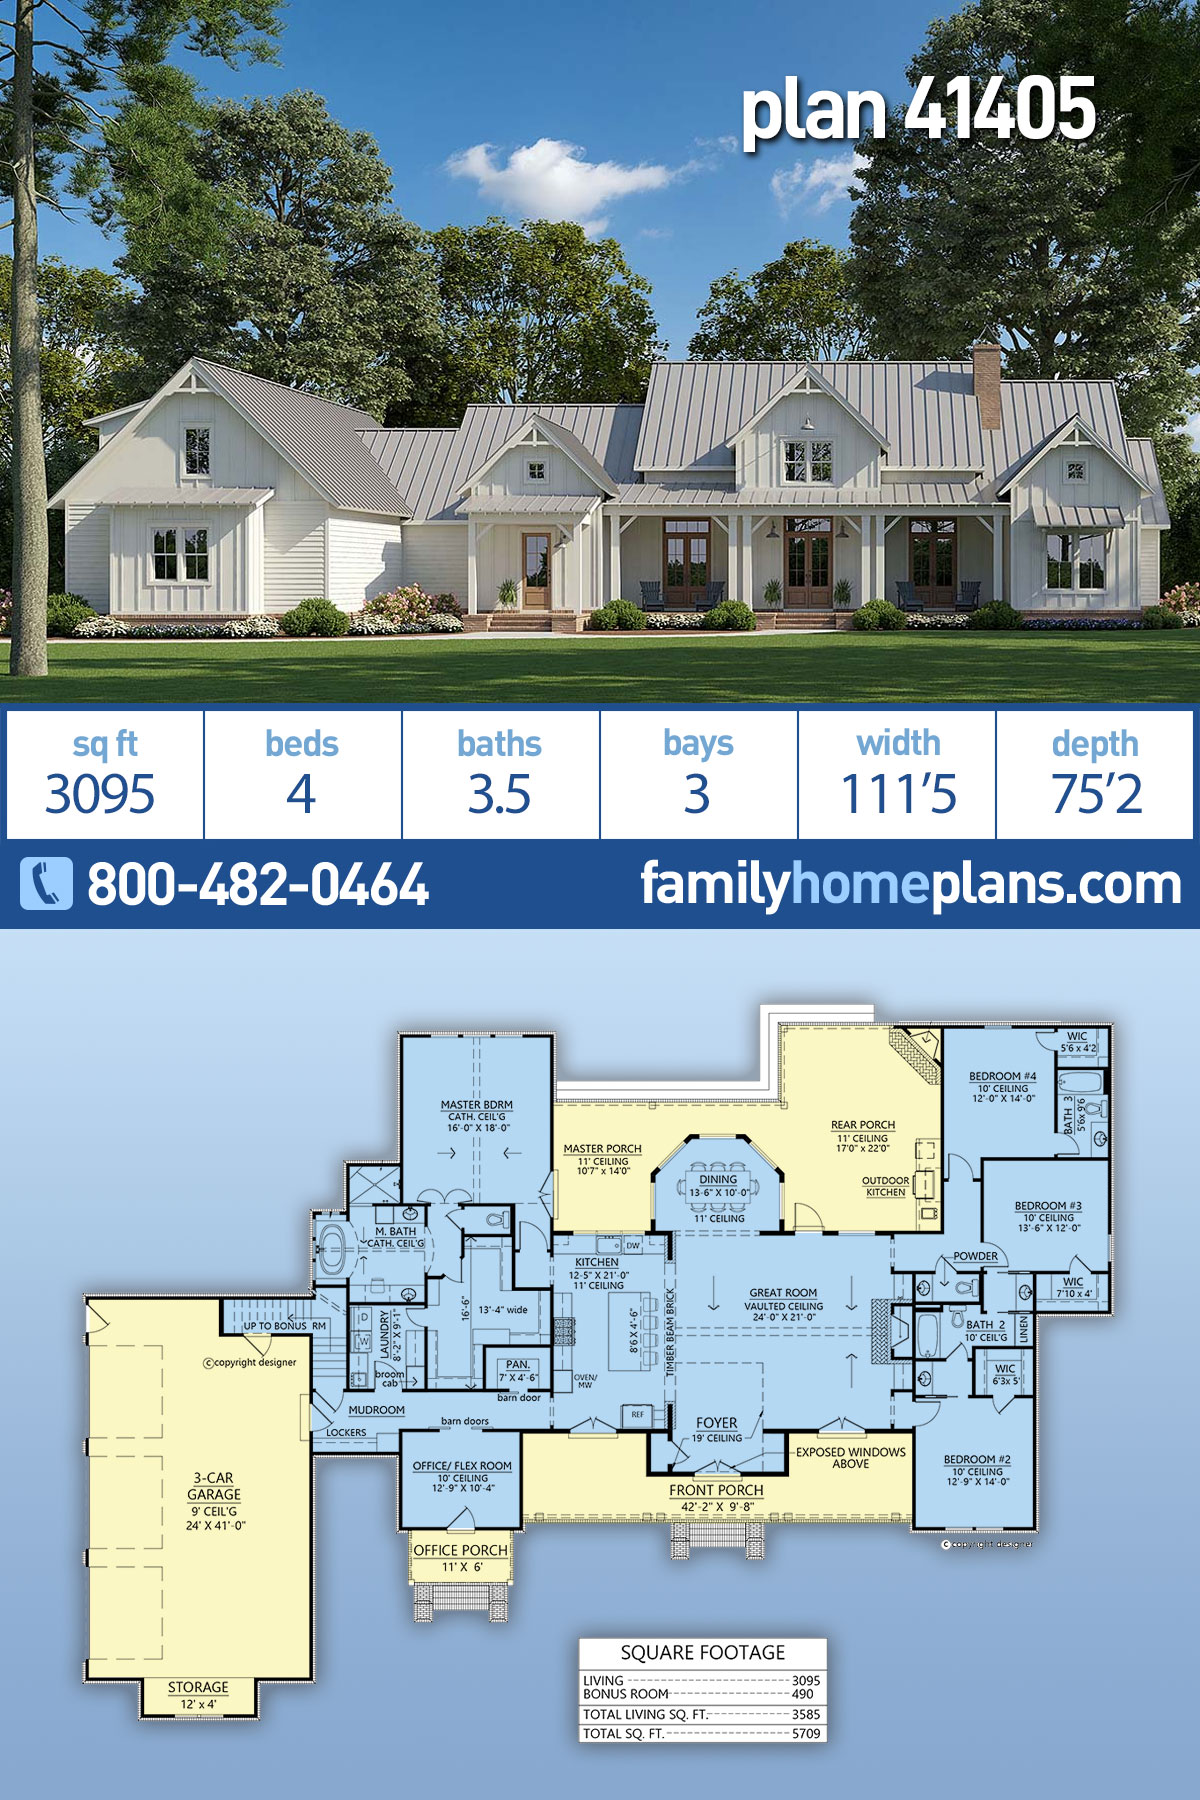 Country , Modern Farmhouse House Plan 41405 with 4 Beds, 4 Baths, 3 Car Garage